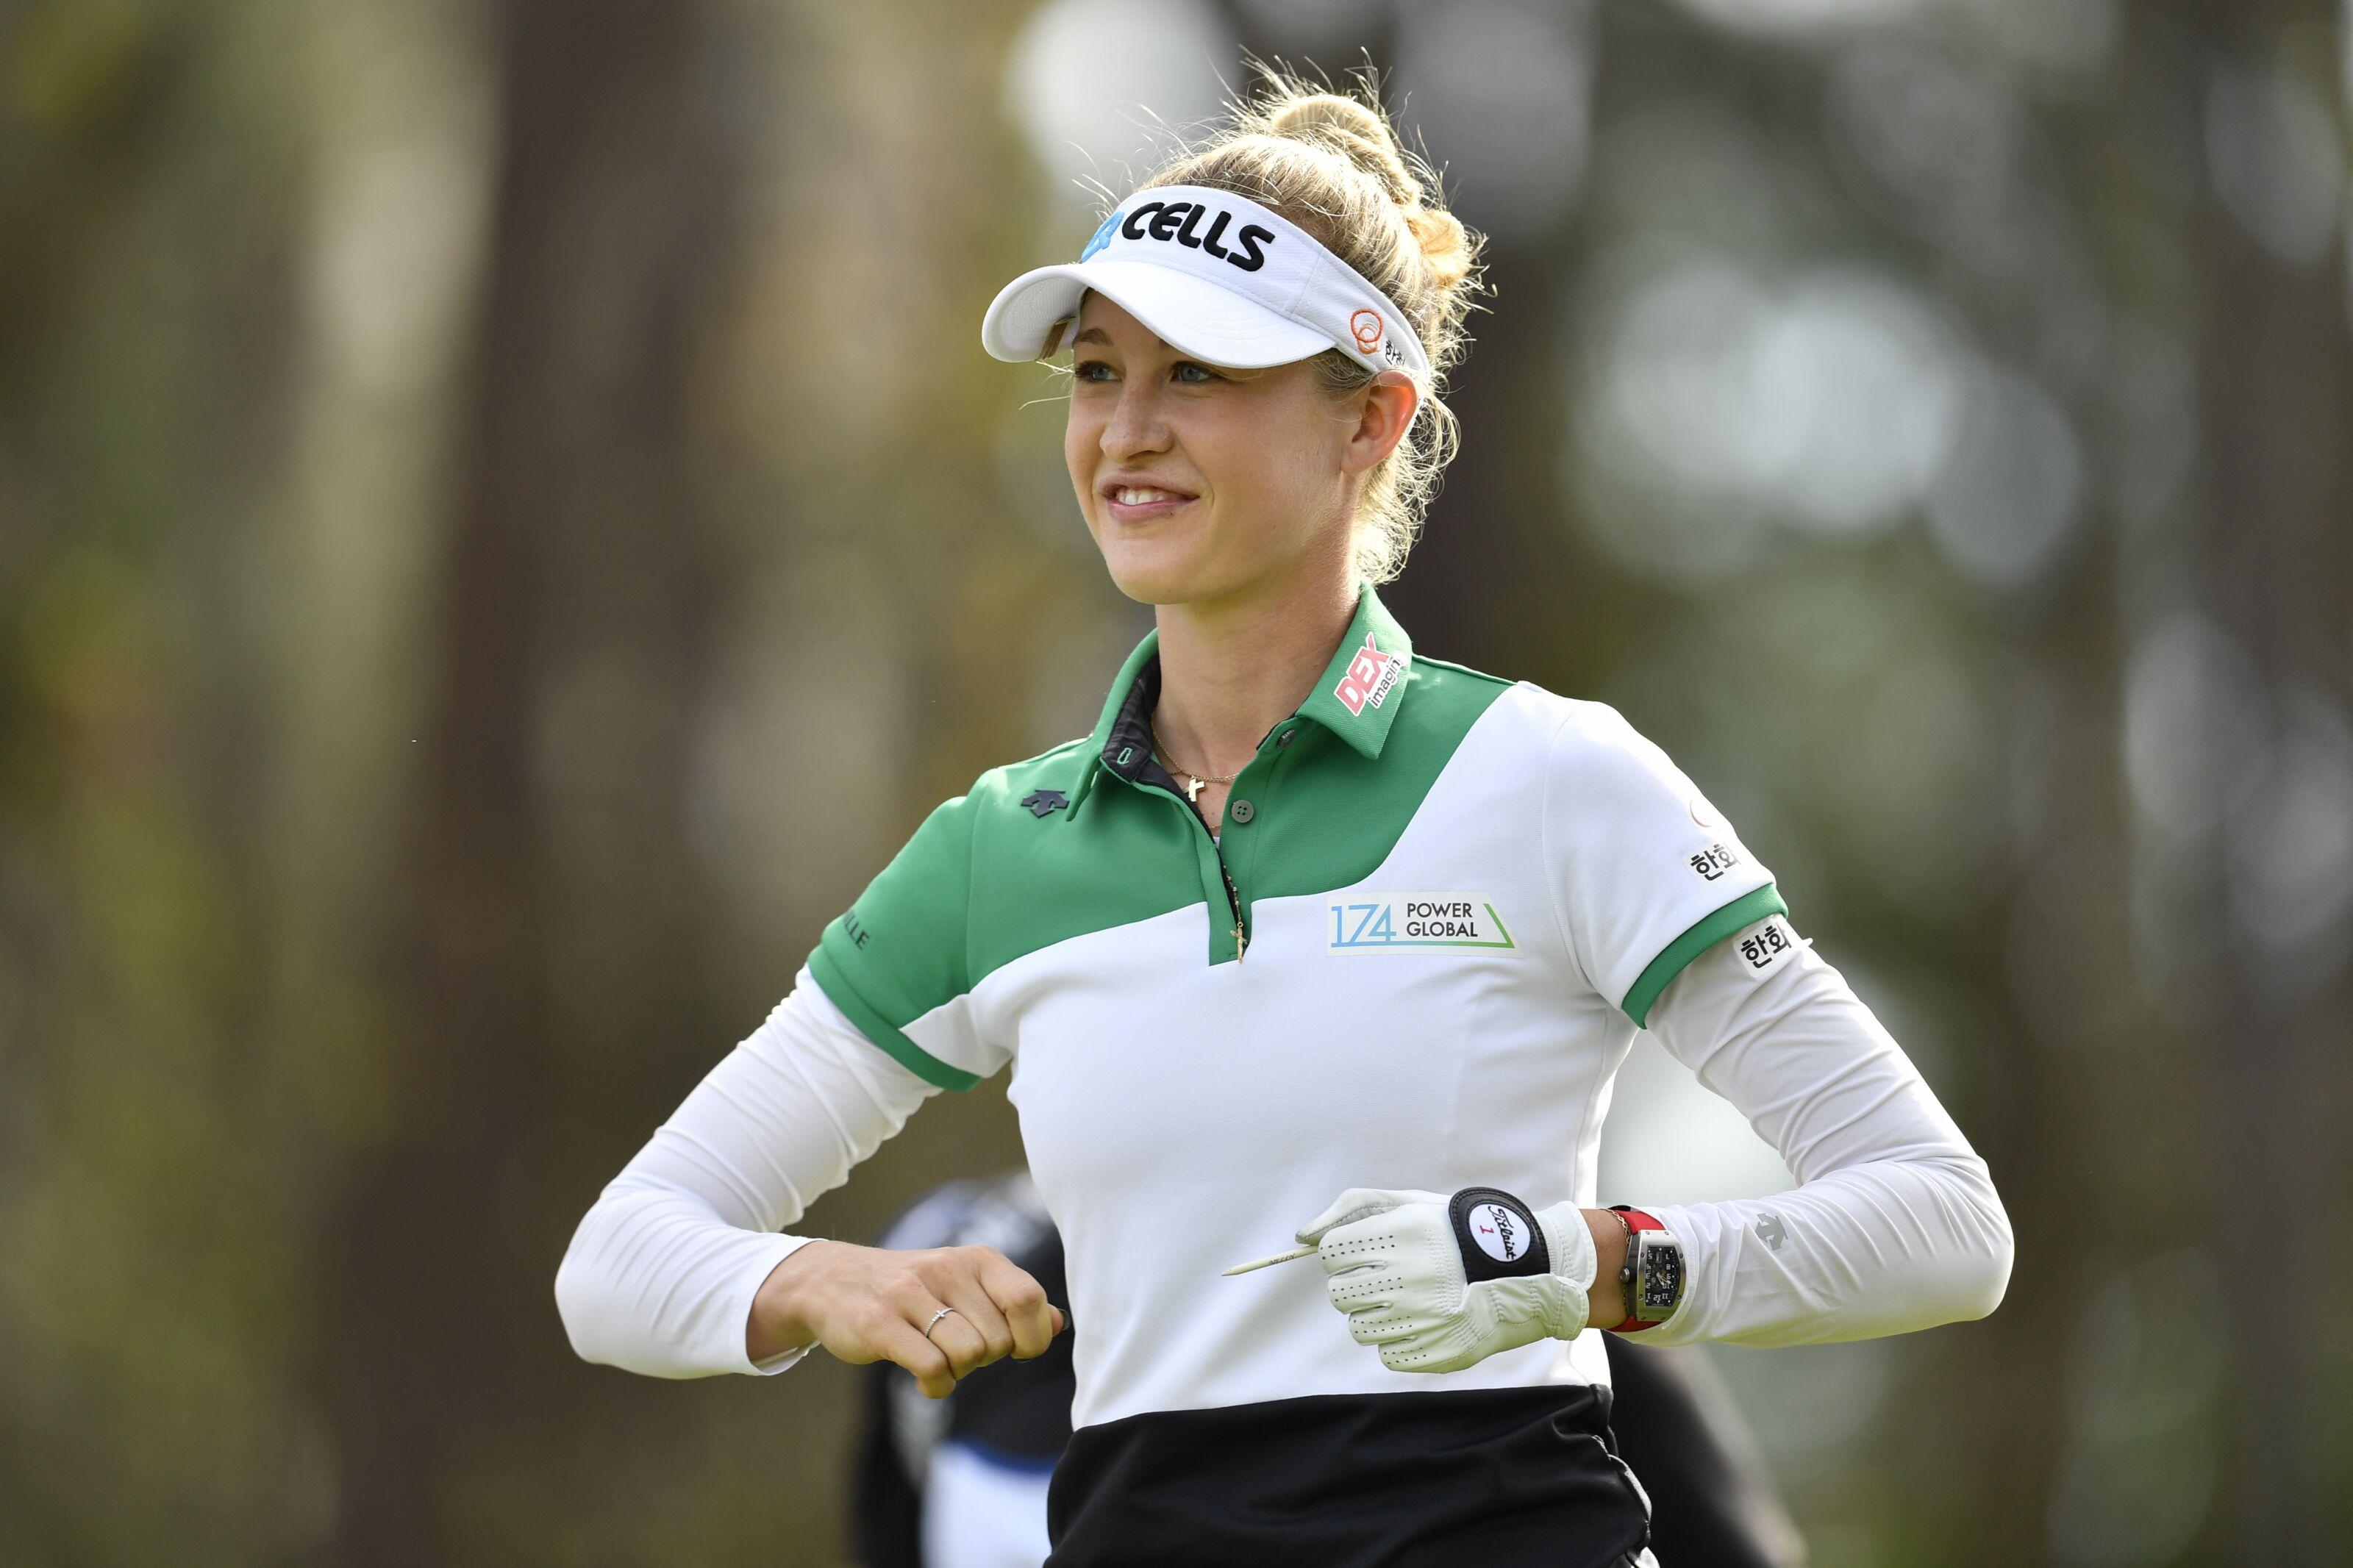 Nelly Korda Stacy Lewis American Standouts Go Into Sunday